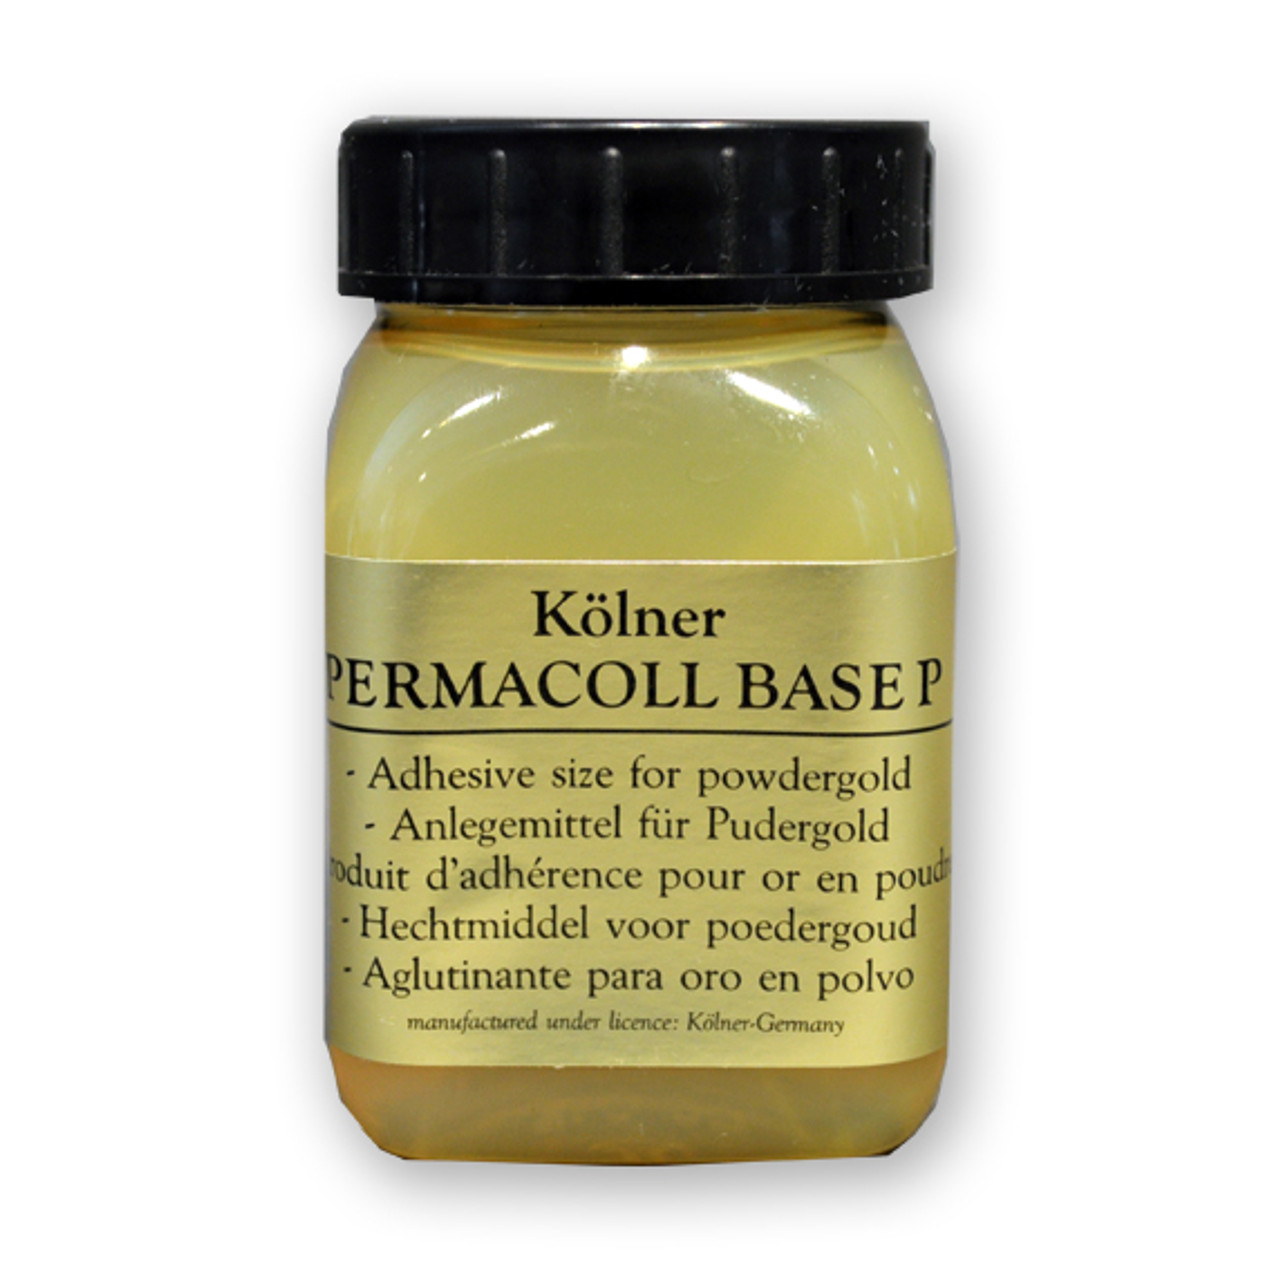 Kolner Adhesive Size for Powder Gold and Mica Permacoll Base P 100ml